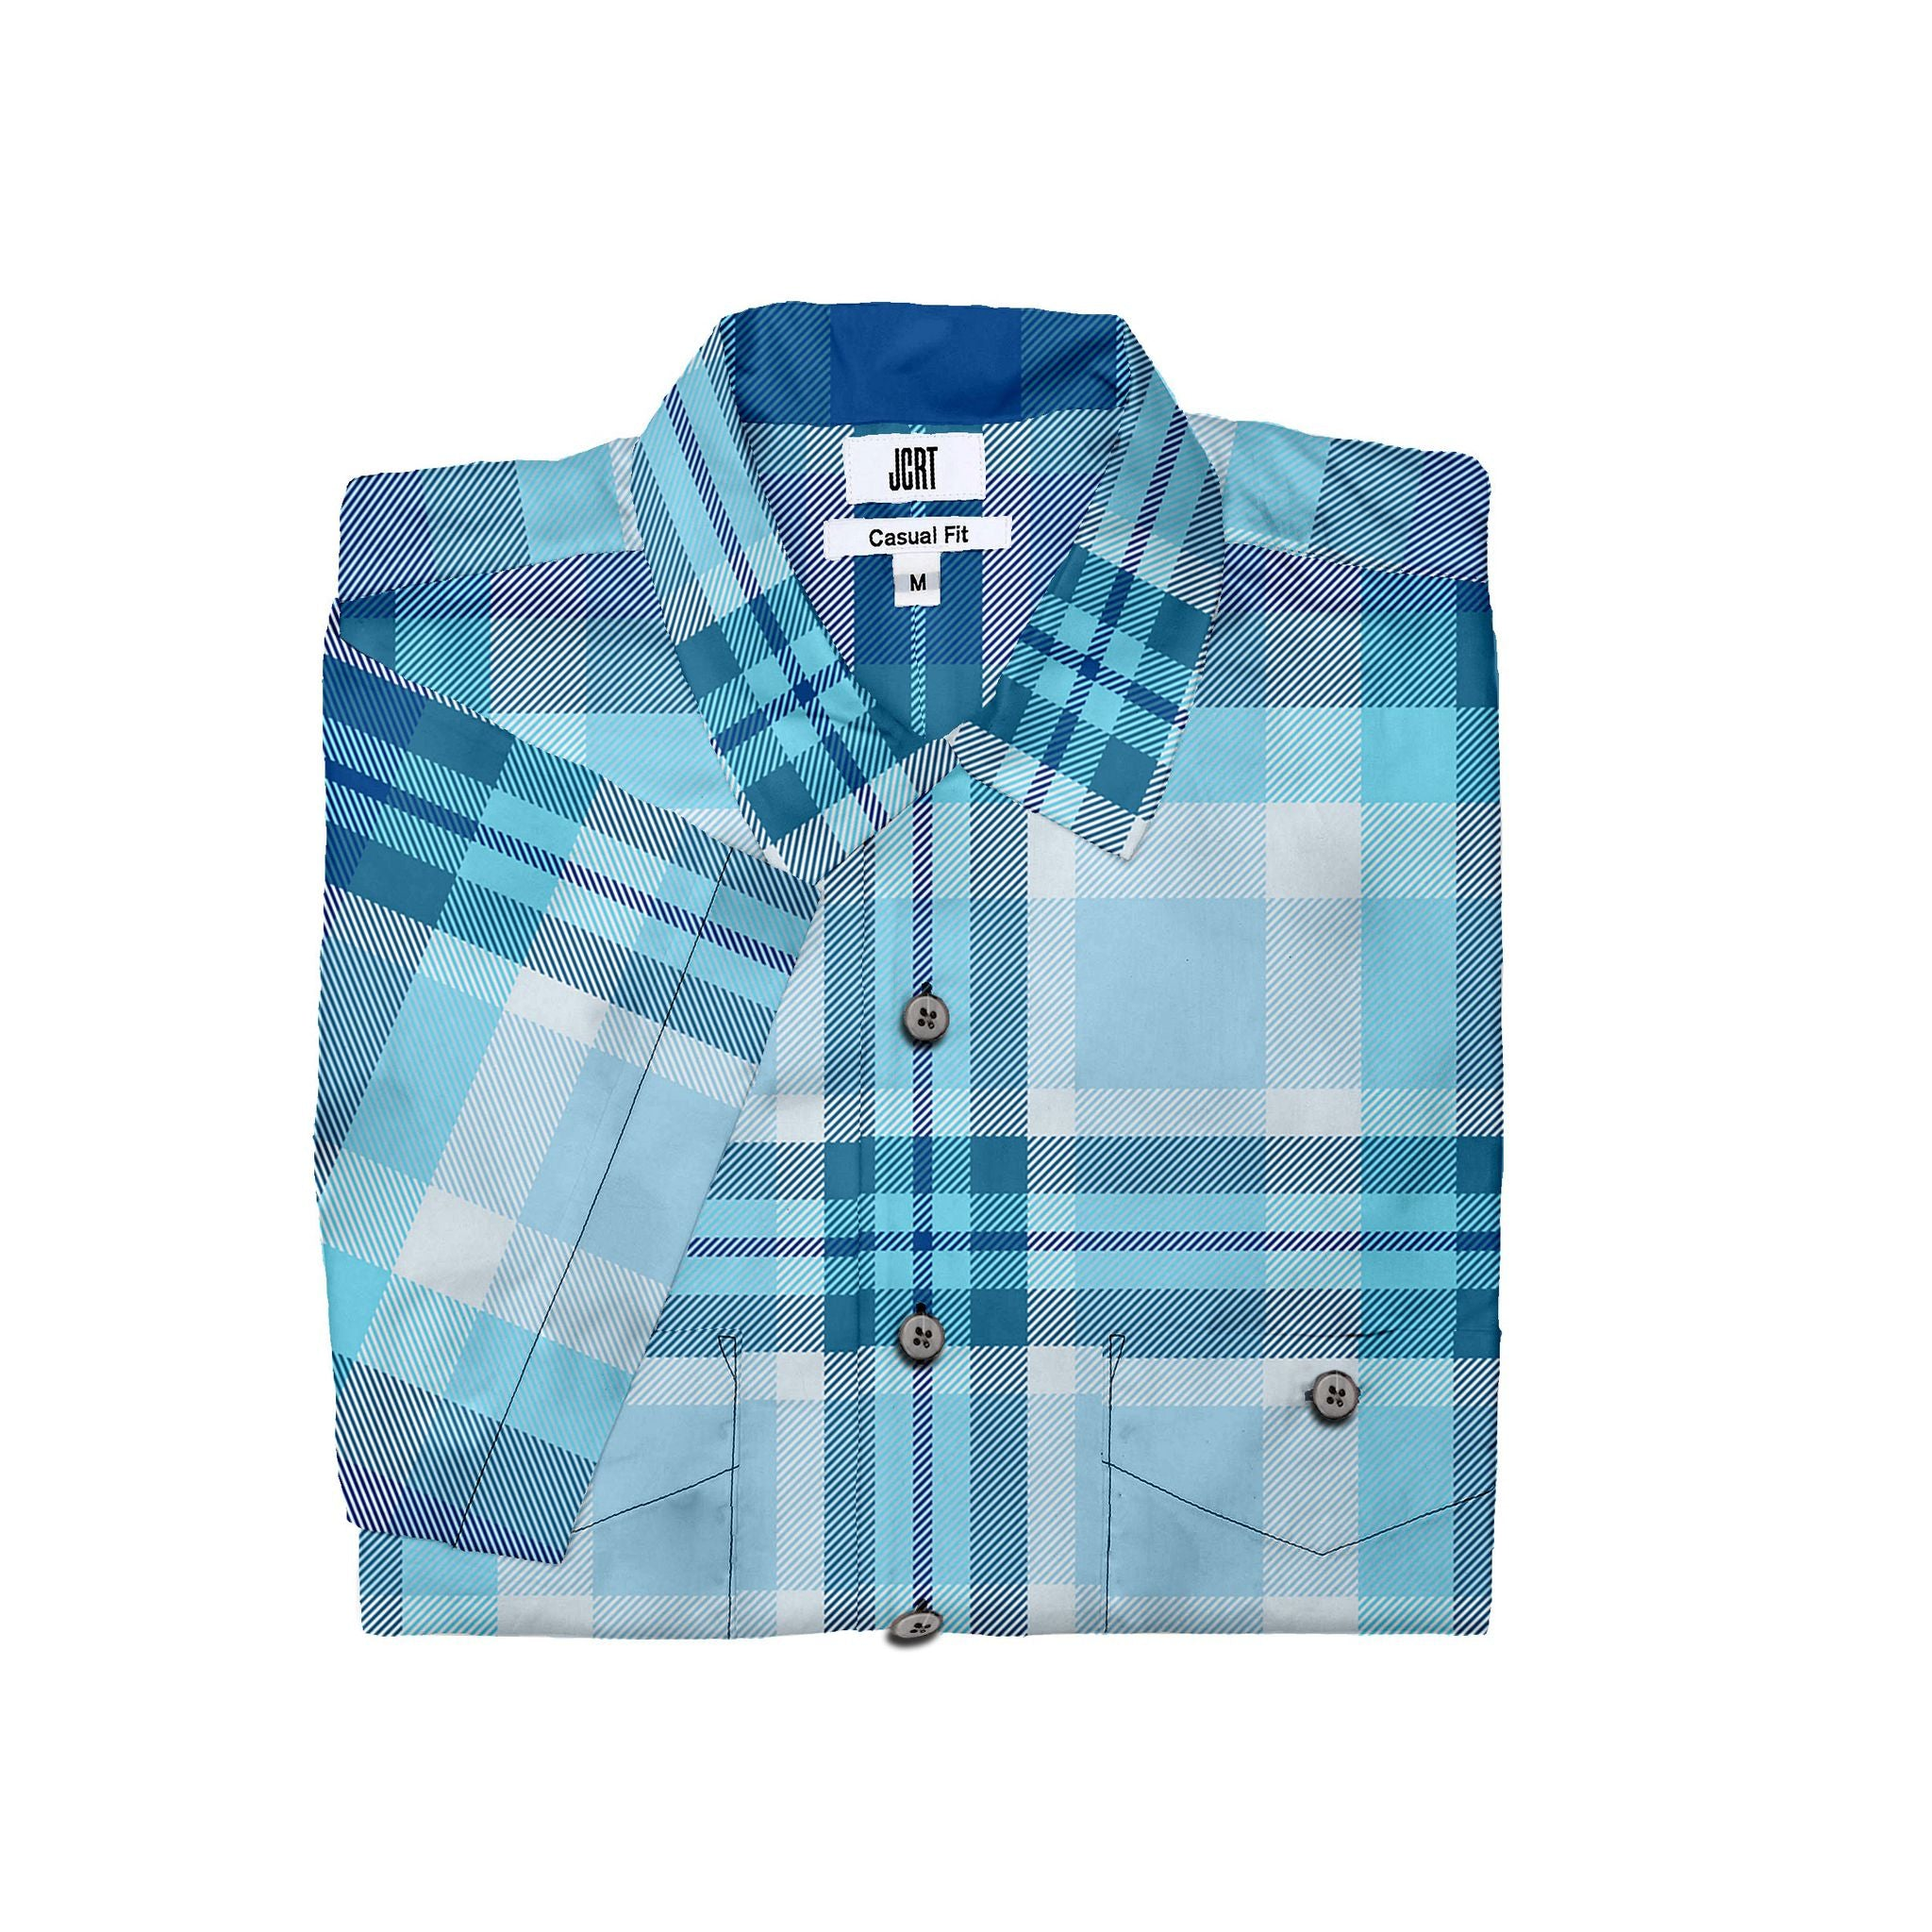 The JCRT Stubbs & Wootton Blue Plaid Short Sleeve Shirt